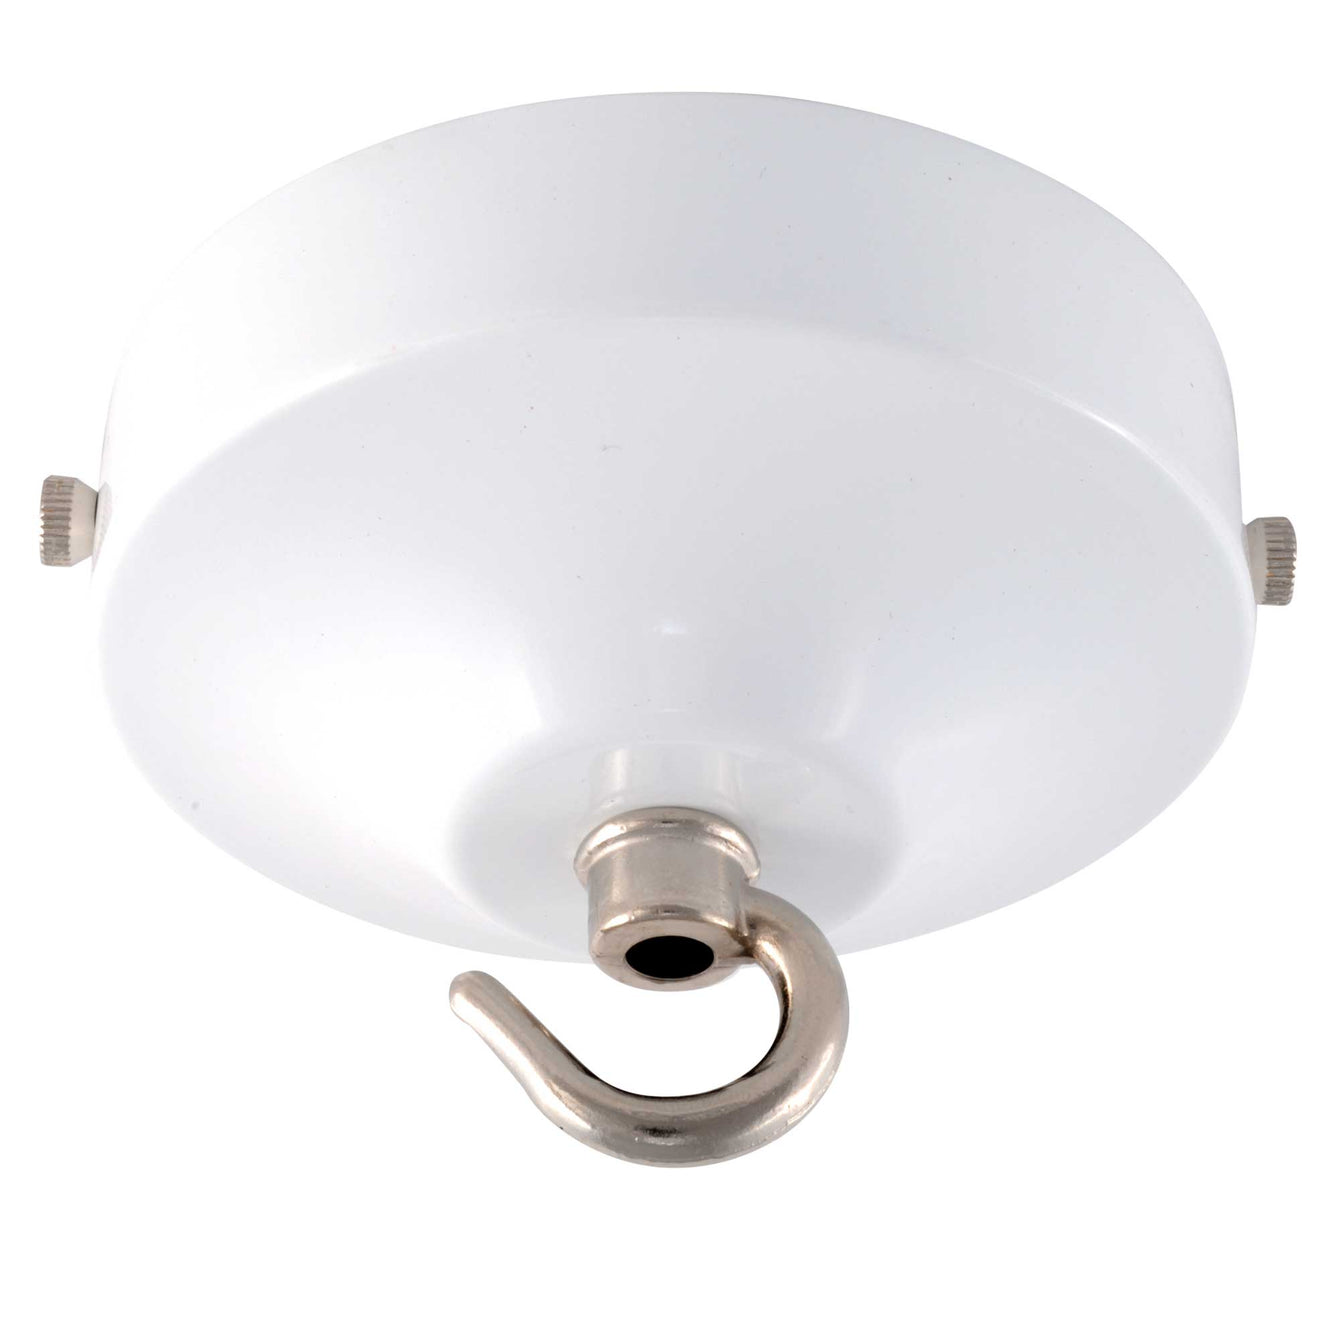 ElekTek 100mm Diameter Convex Ceiling Rose with Strap Bracket and Hook Metallic and Powder Coated Finishes Brilliant White